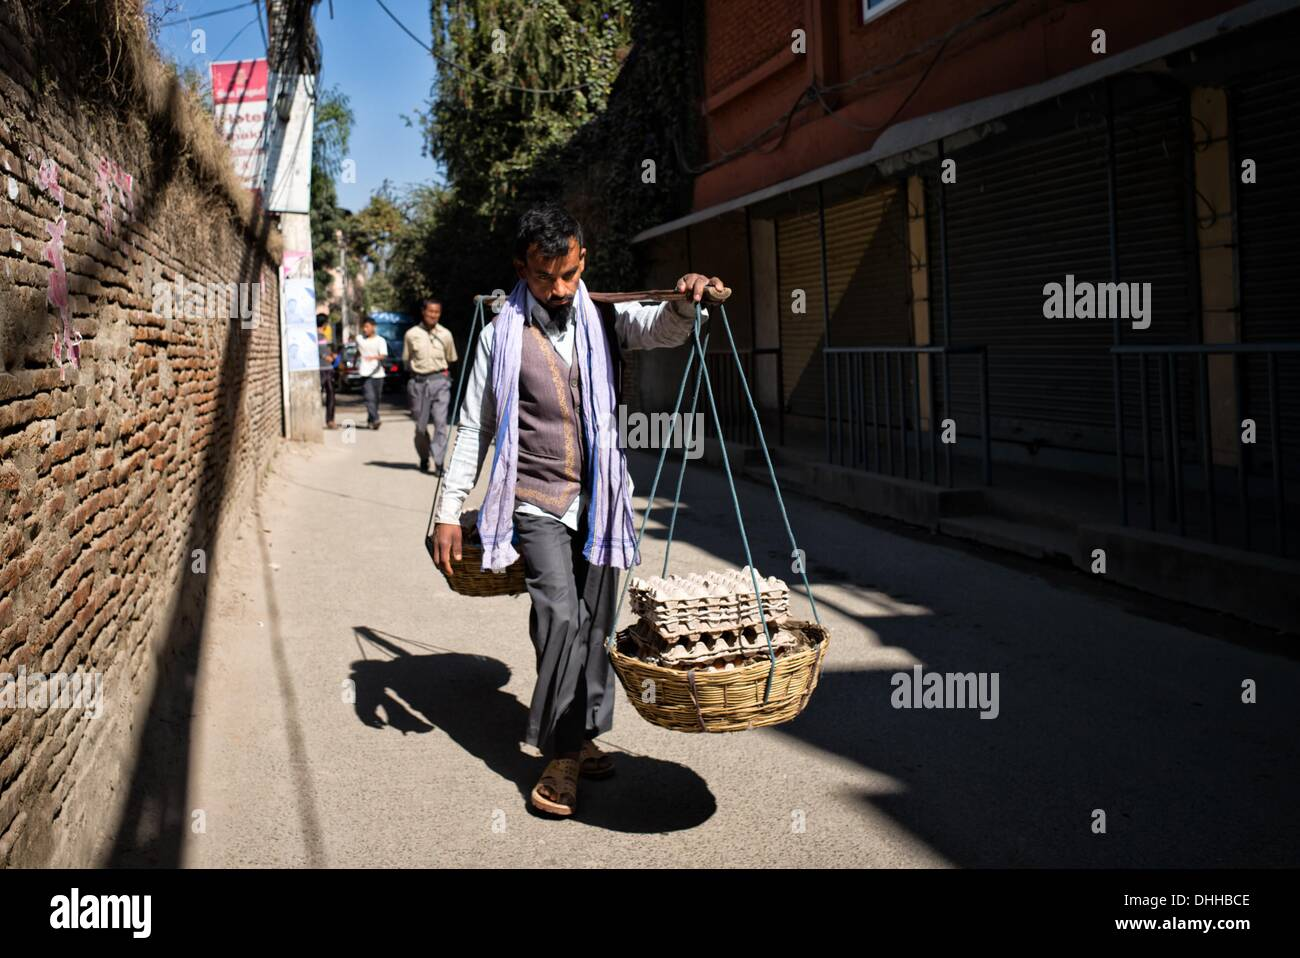 Kathmandu, Kathmandu, Nepal. 11th Nov, 2013. A hawker carries eggs for sale downtown Kathmandu. During general strike shops are ordered to close.Communist Party of Nepal - Maoists (CPN-M) and their 30 parties alliance announced ten day general strike to hinder the elections as Nepal prepares to vote to elect Constitutional Assembly members. Nepal political crisis started in may 2012 when the previous constitutional assembly failed to draft the constitution. © Agron Dragaj/ZUMAPRESS.com/Alamy Live News - Stock Image